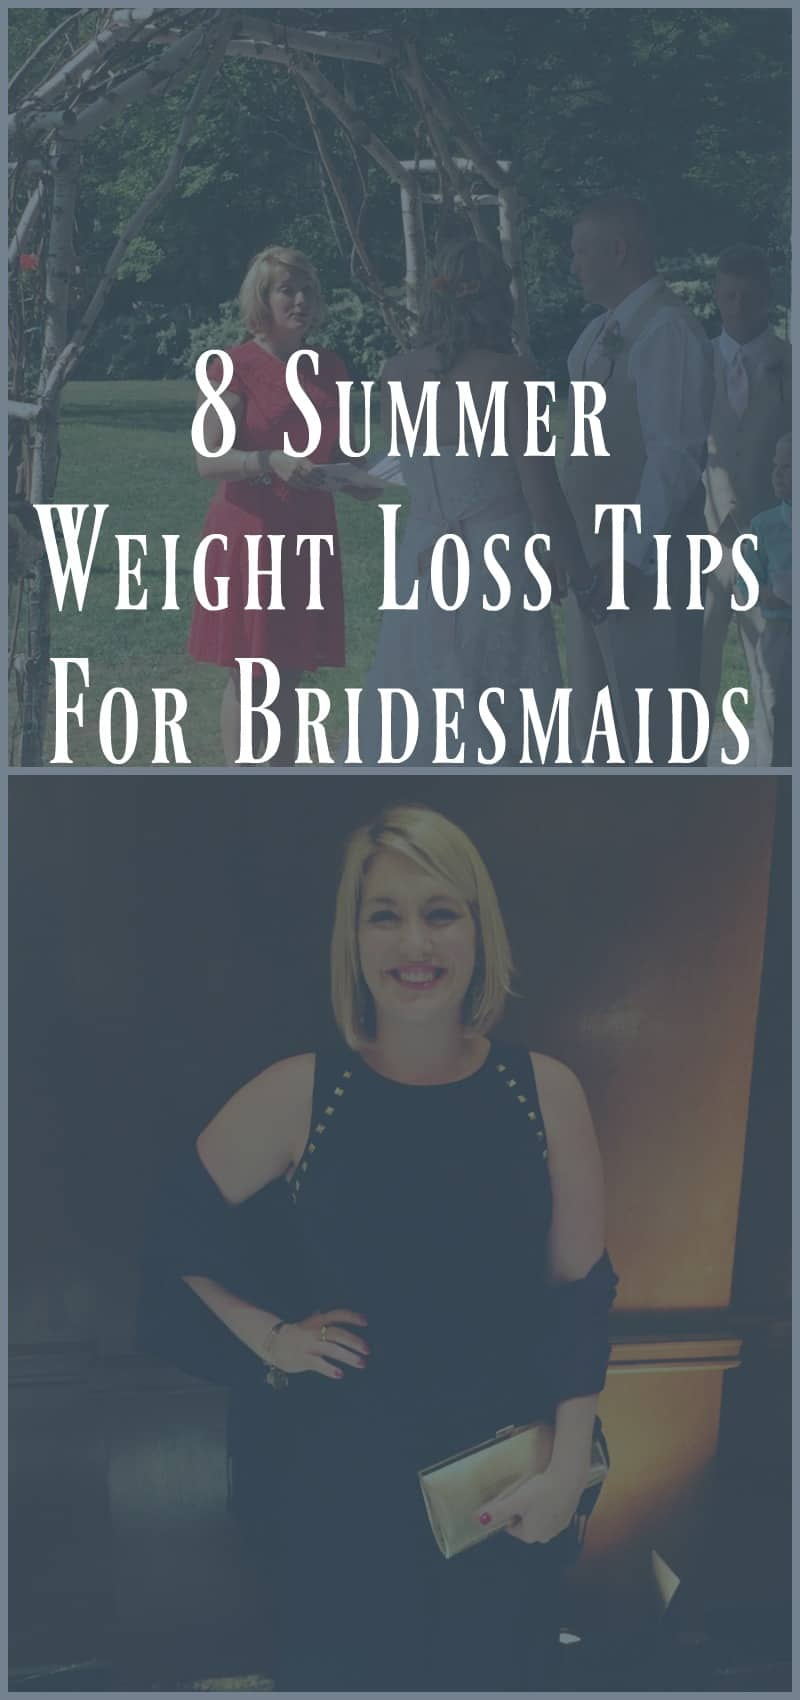 8 Summer Weight Loss Tips For Bridesmaids